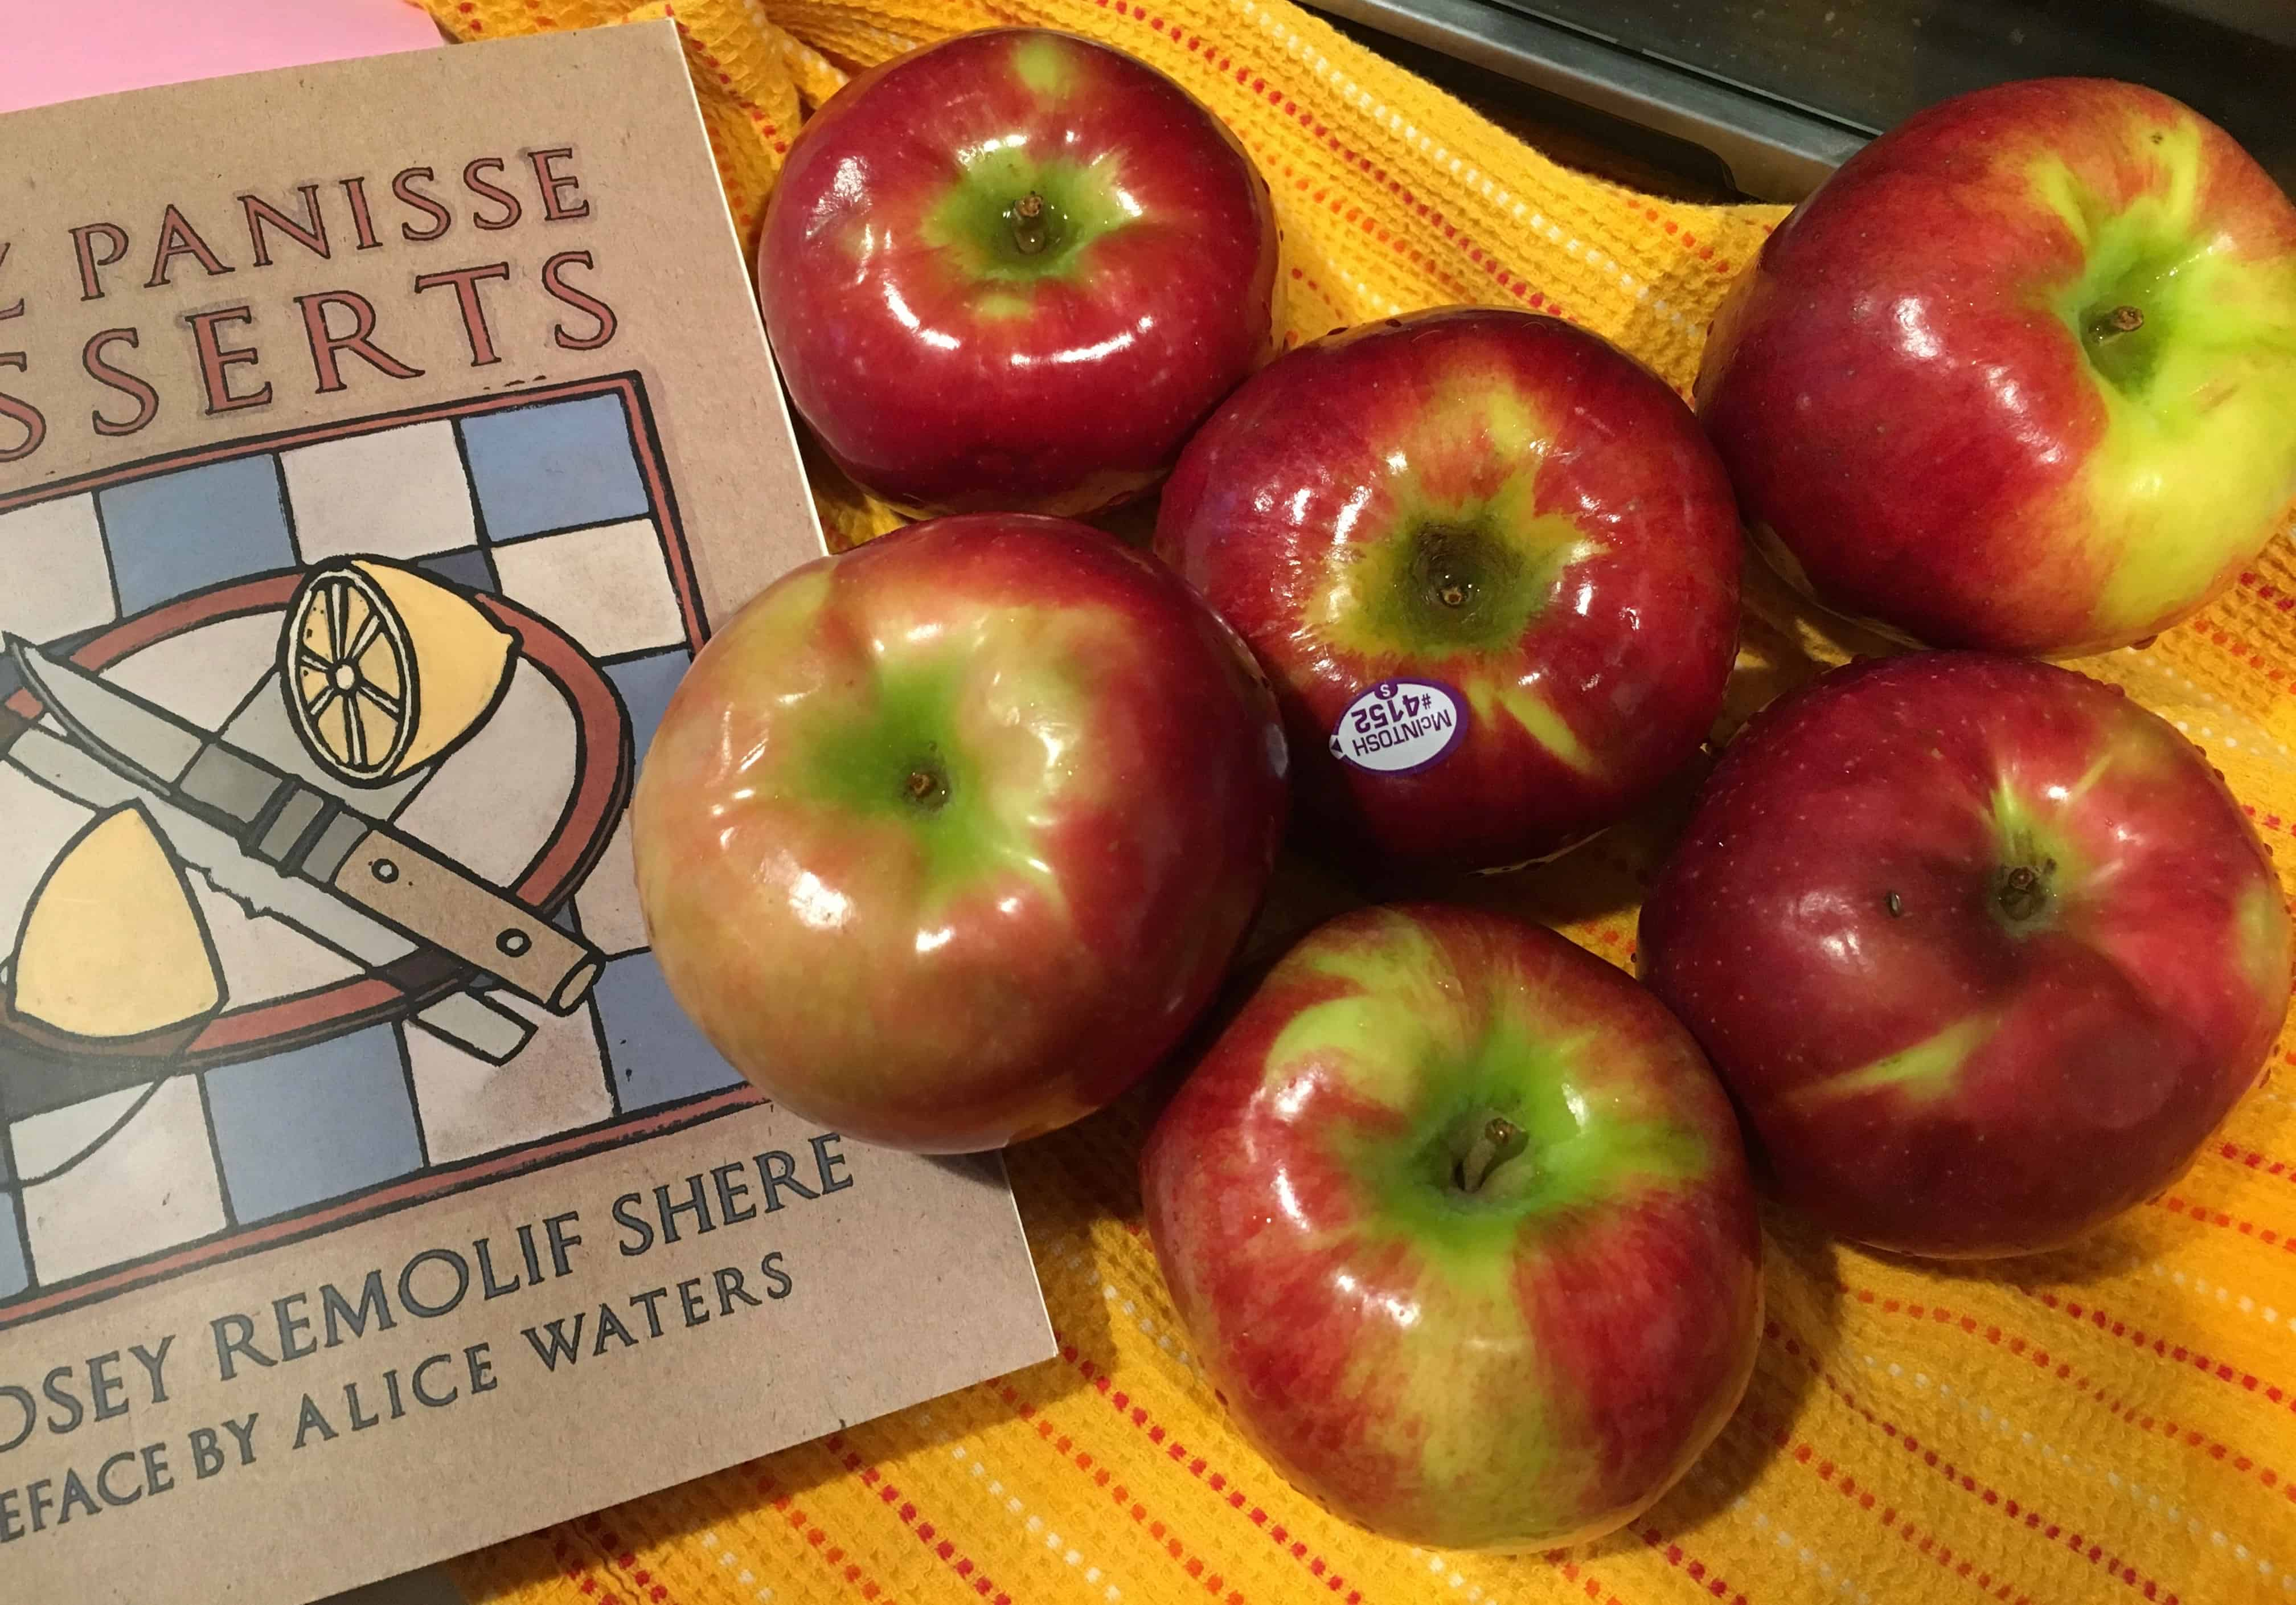 Apples to core, peel and slice.